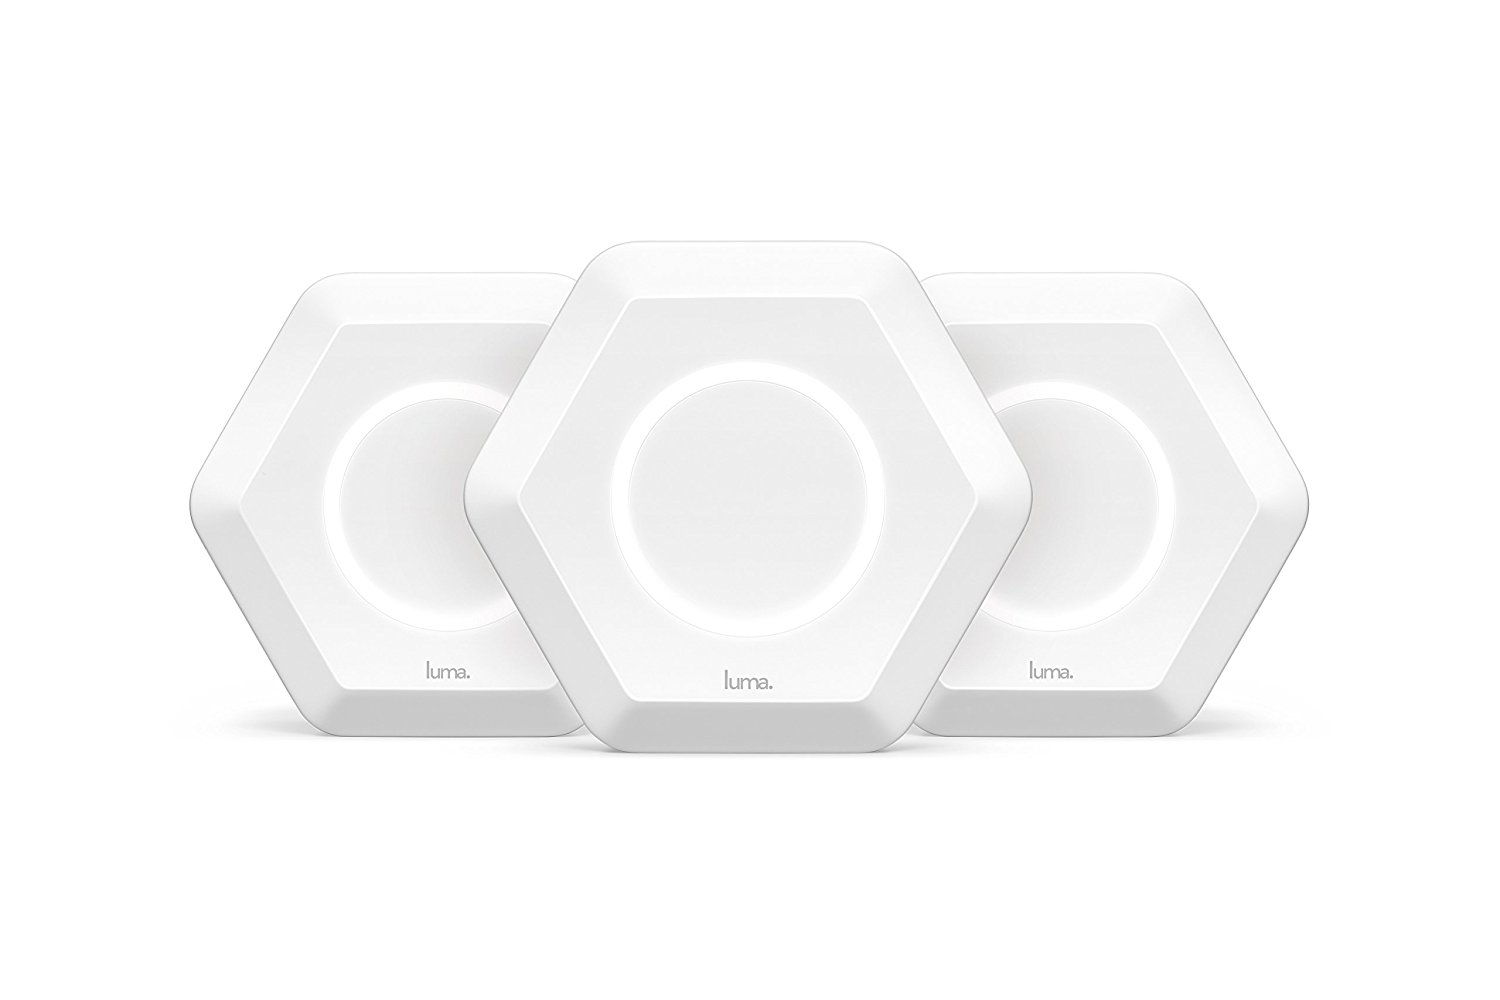 Luma Home WiFi System (3 Pack) Replaces WiFi Extenders and Routers, Works with Alexa, Simultaneous Dual Band 2.4 5GHz,... by Luma